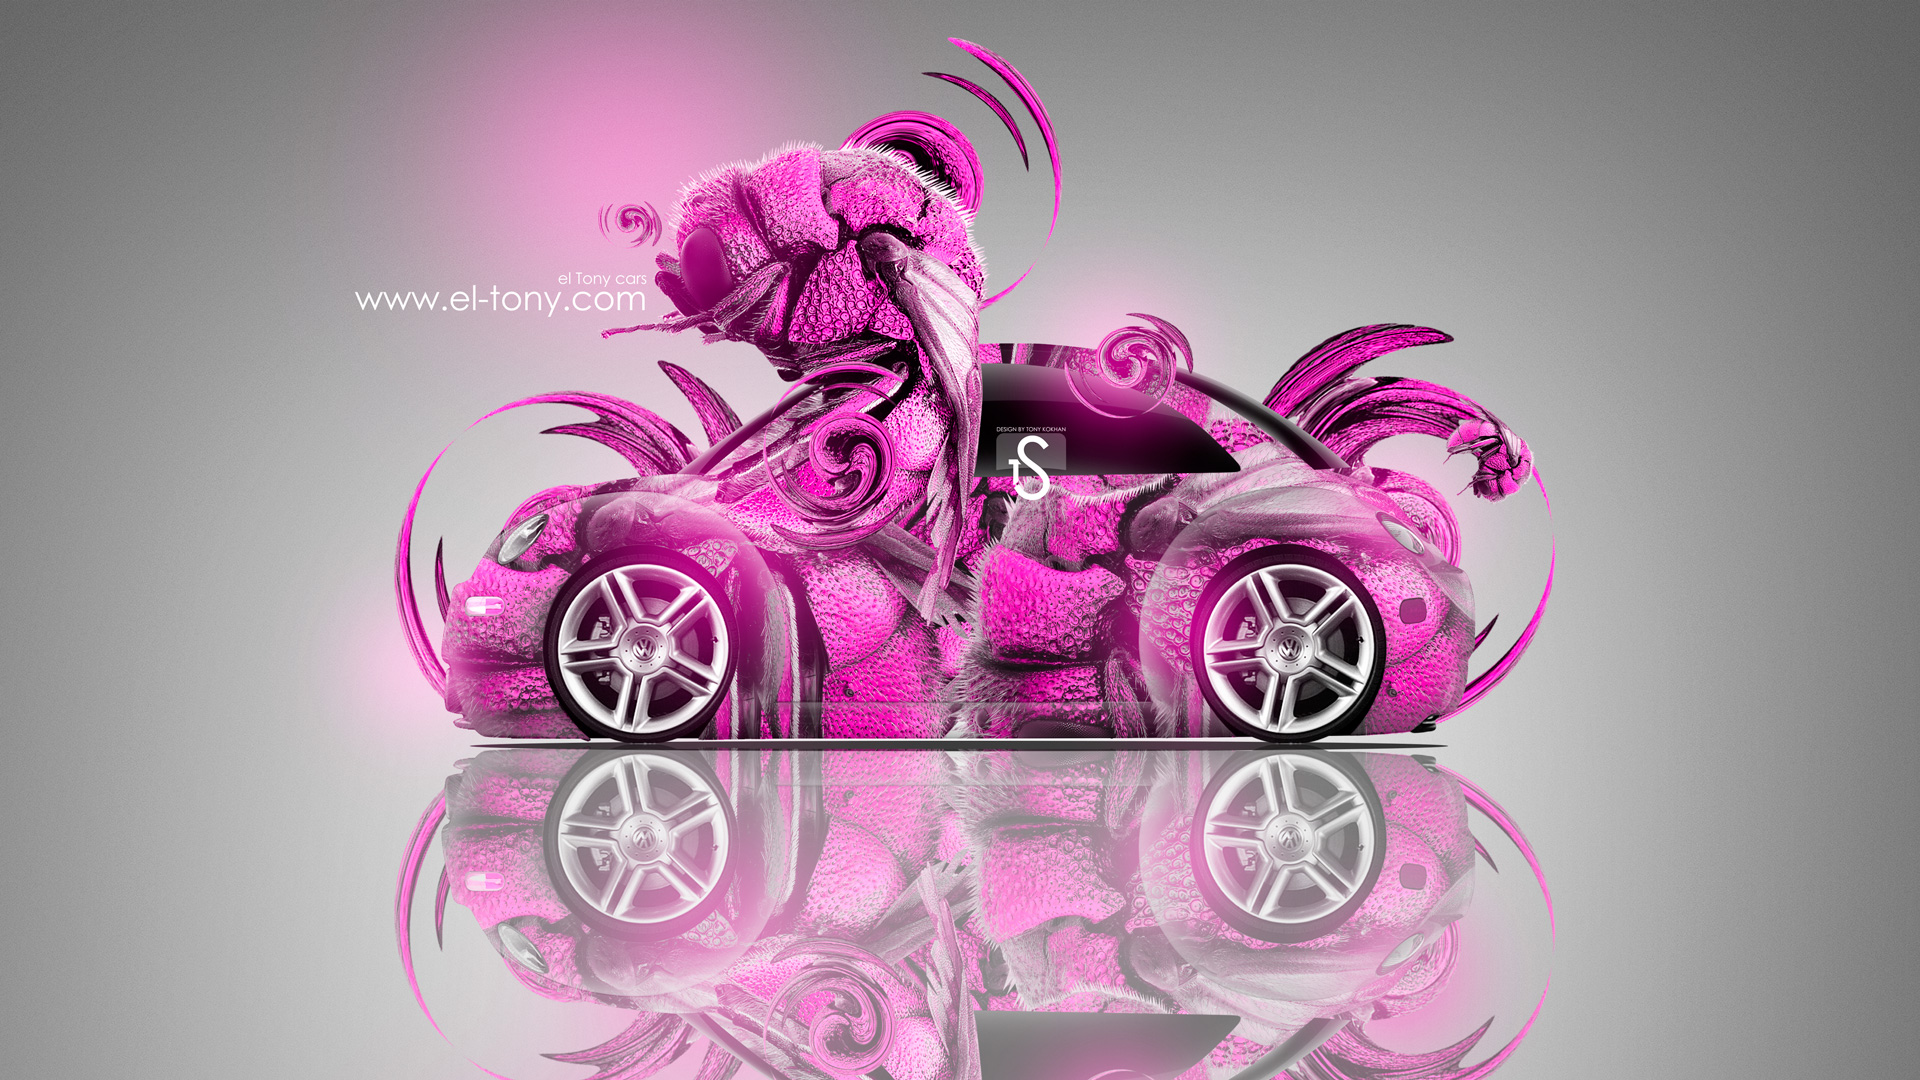 Volkswagen Beetle Fantasy Car 2013 El Tony